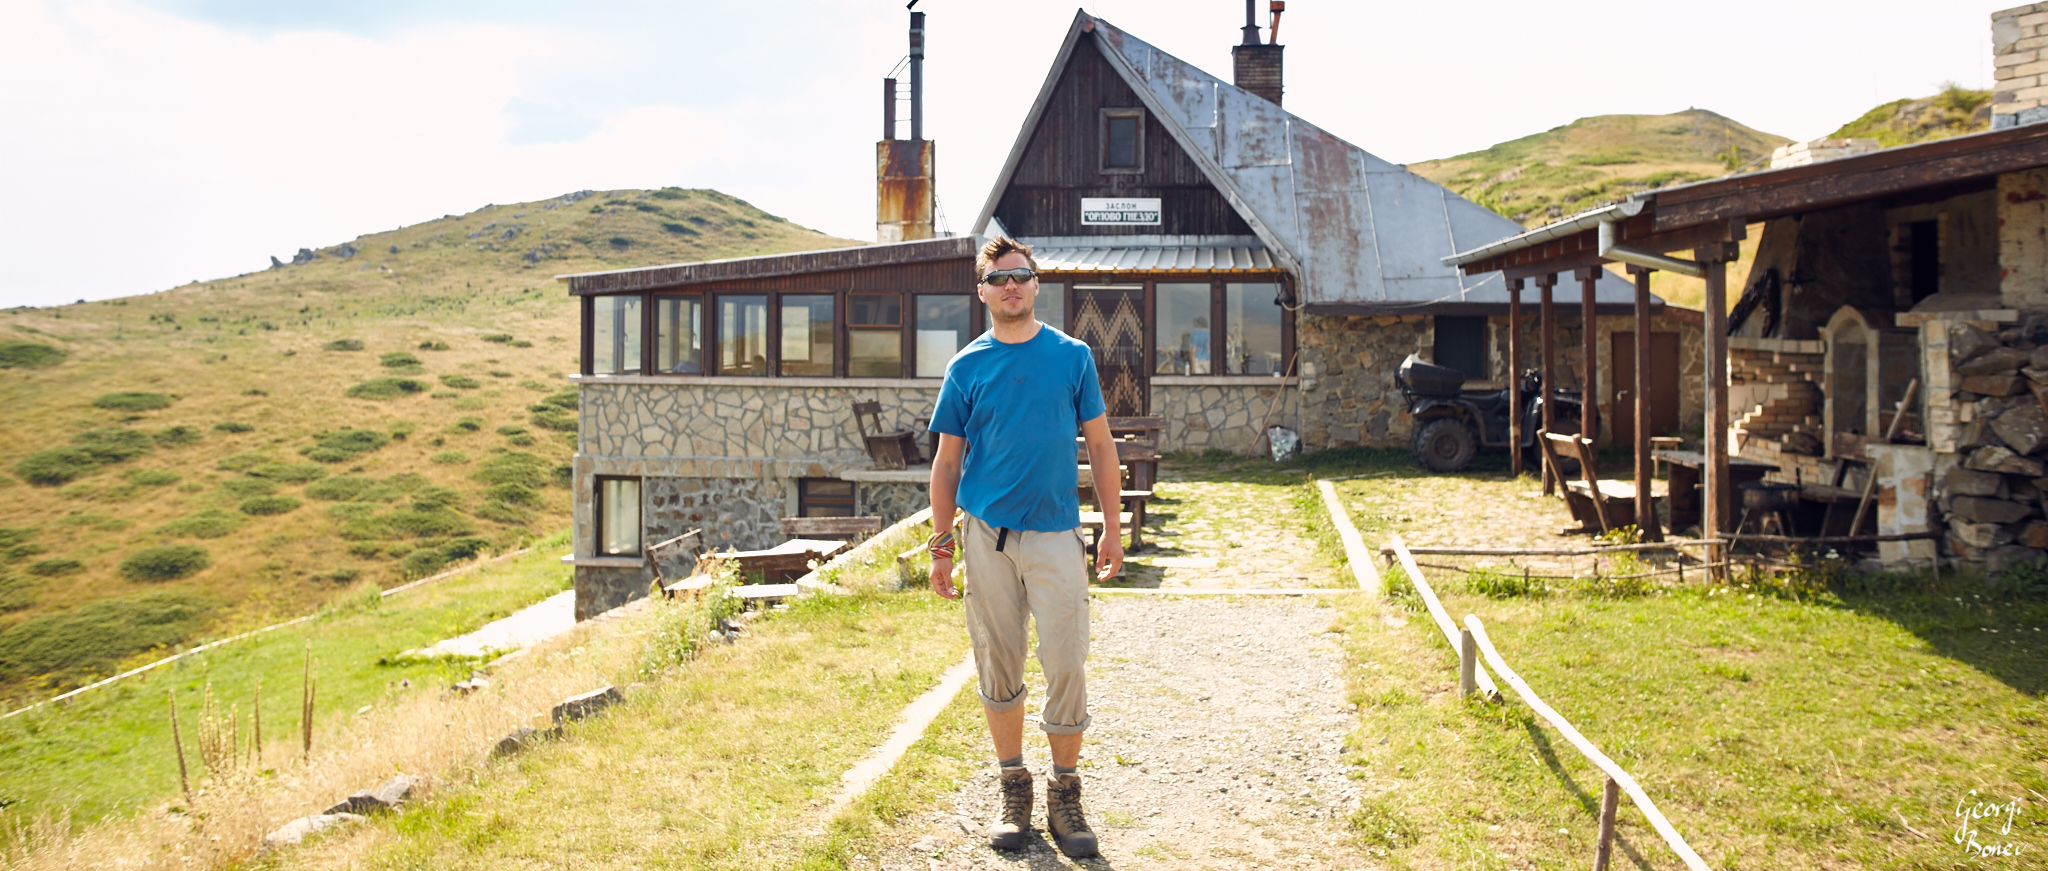 Georgi in front of Orlovo gnezdo shelter, Mt. Stara planina, Bulgaria